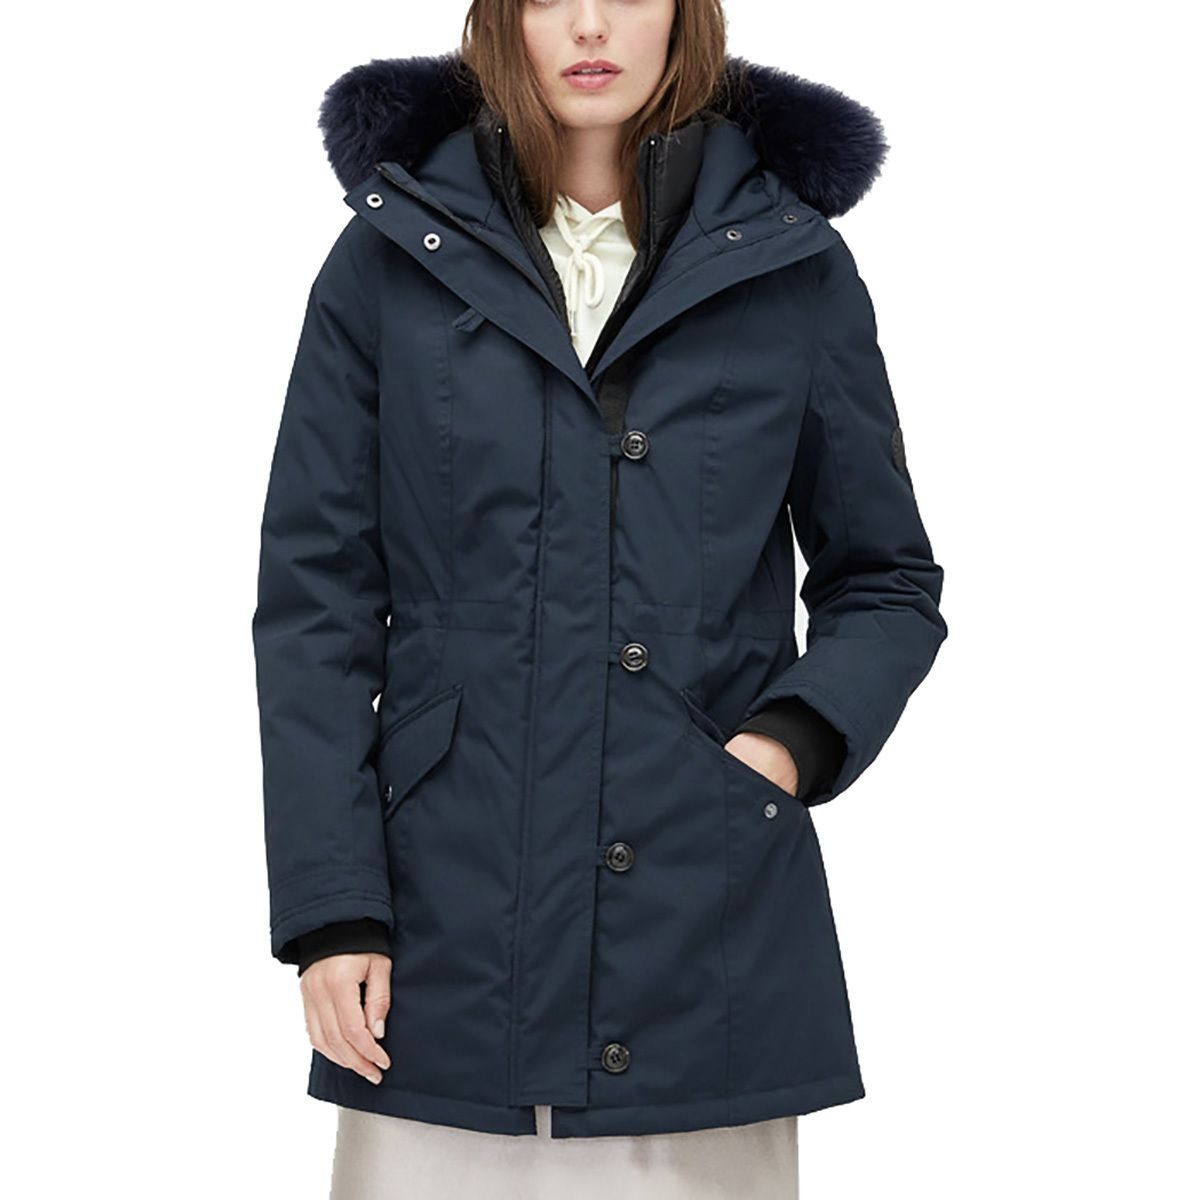 ad545324882 UGG Womens Adirondack Parka - Navy -: Amazon.co.uk: Clothing